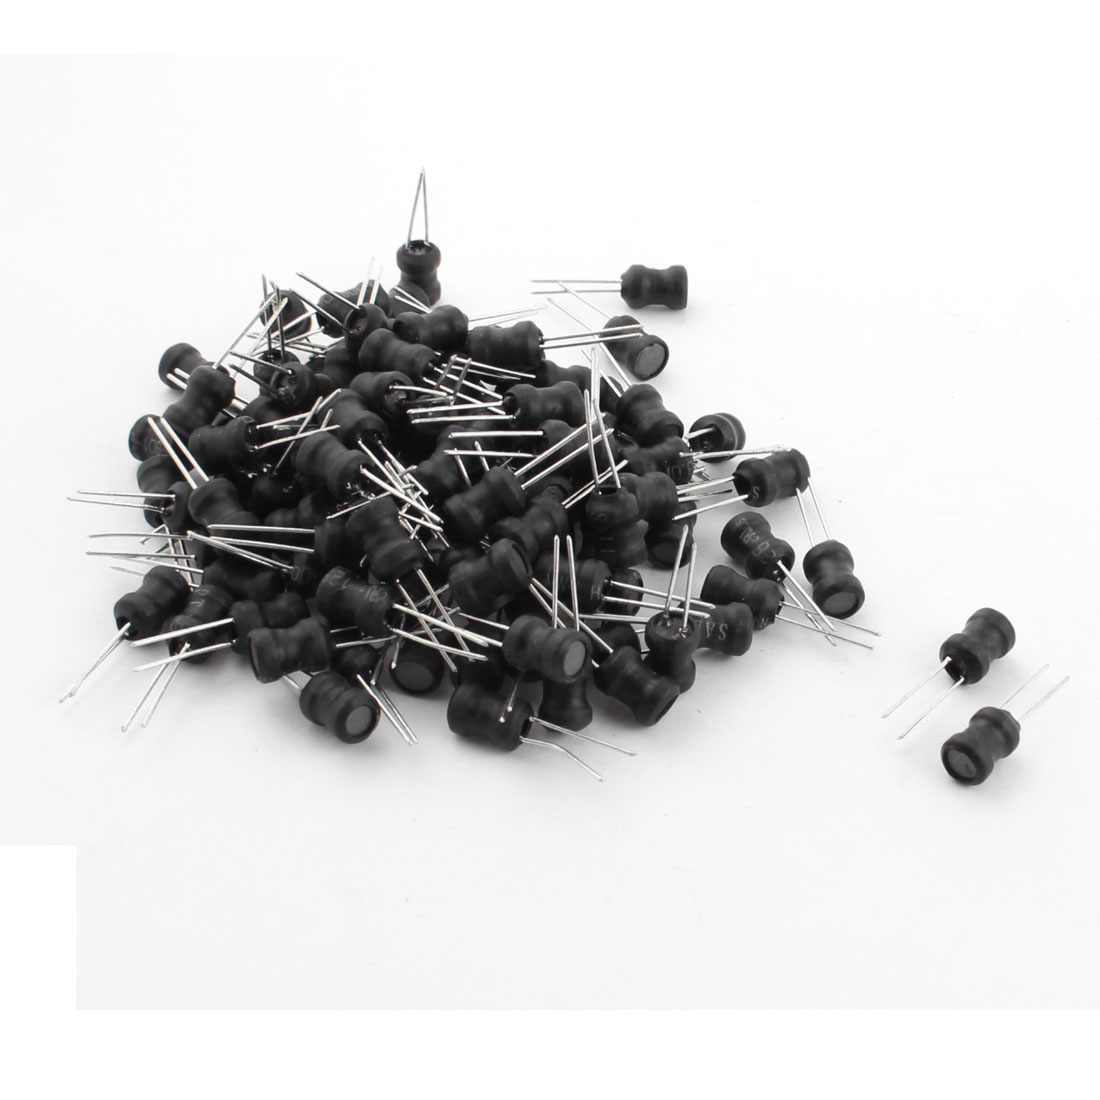 100Pcs 3.3mH 300mA 6x8mm 10% Tolerance Radial Lead Inductor Black